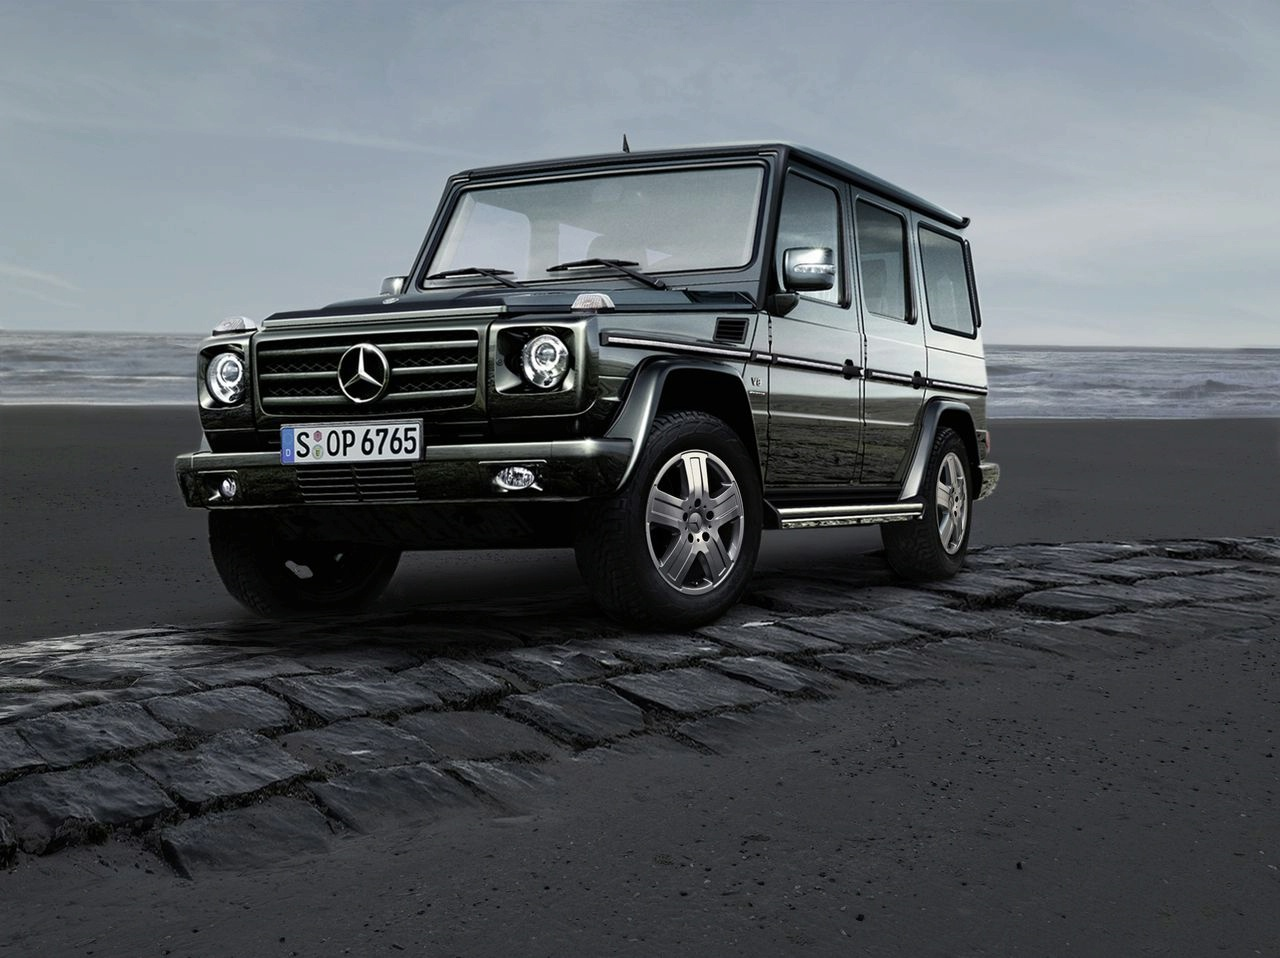 3dtuning of mercedes g class suv 2011 3dtuning - unique on